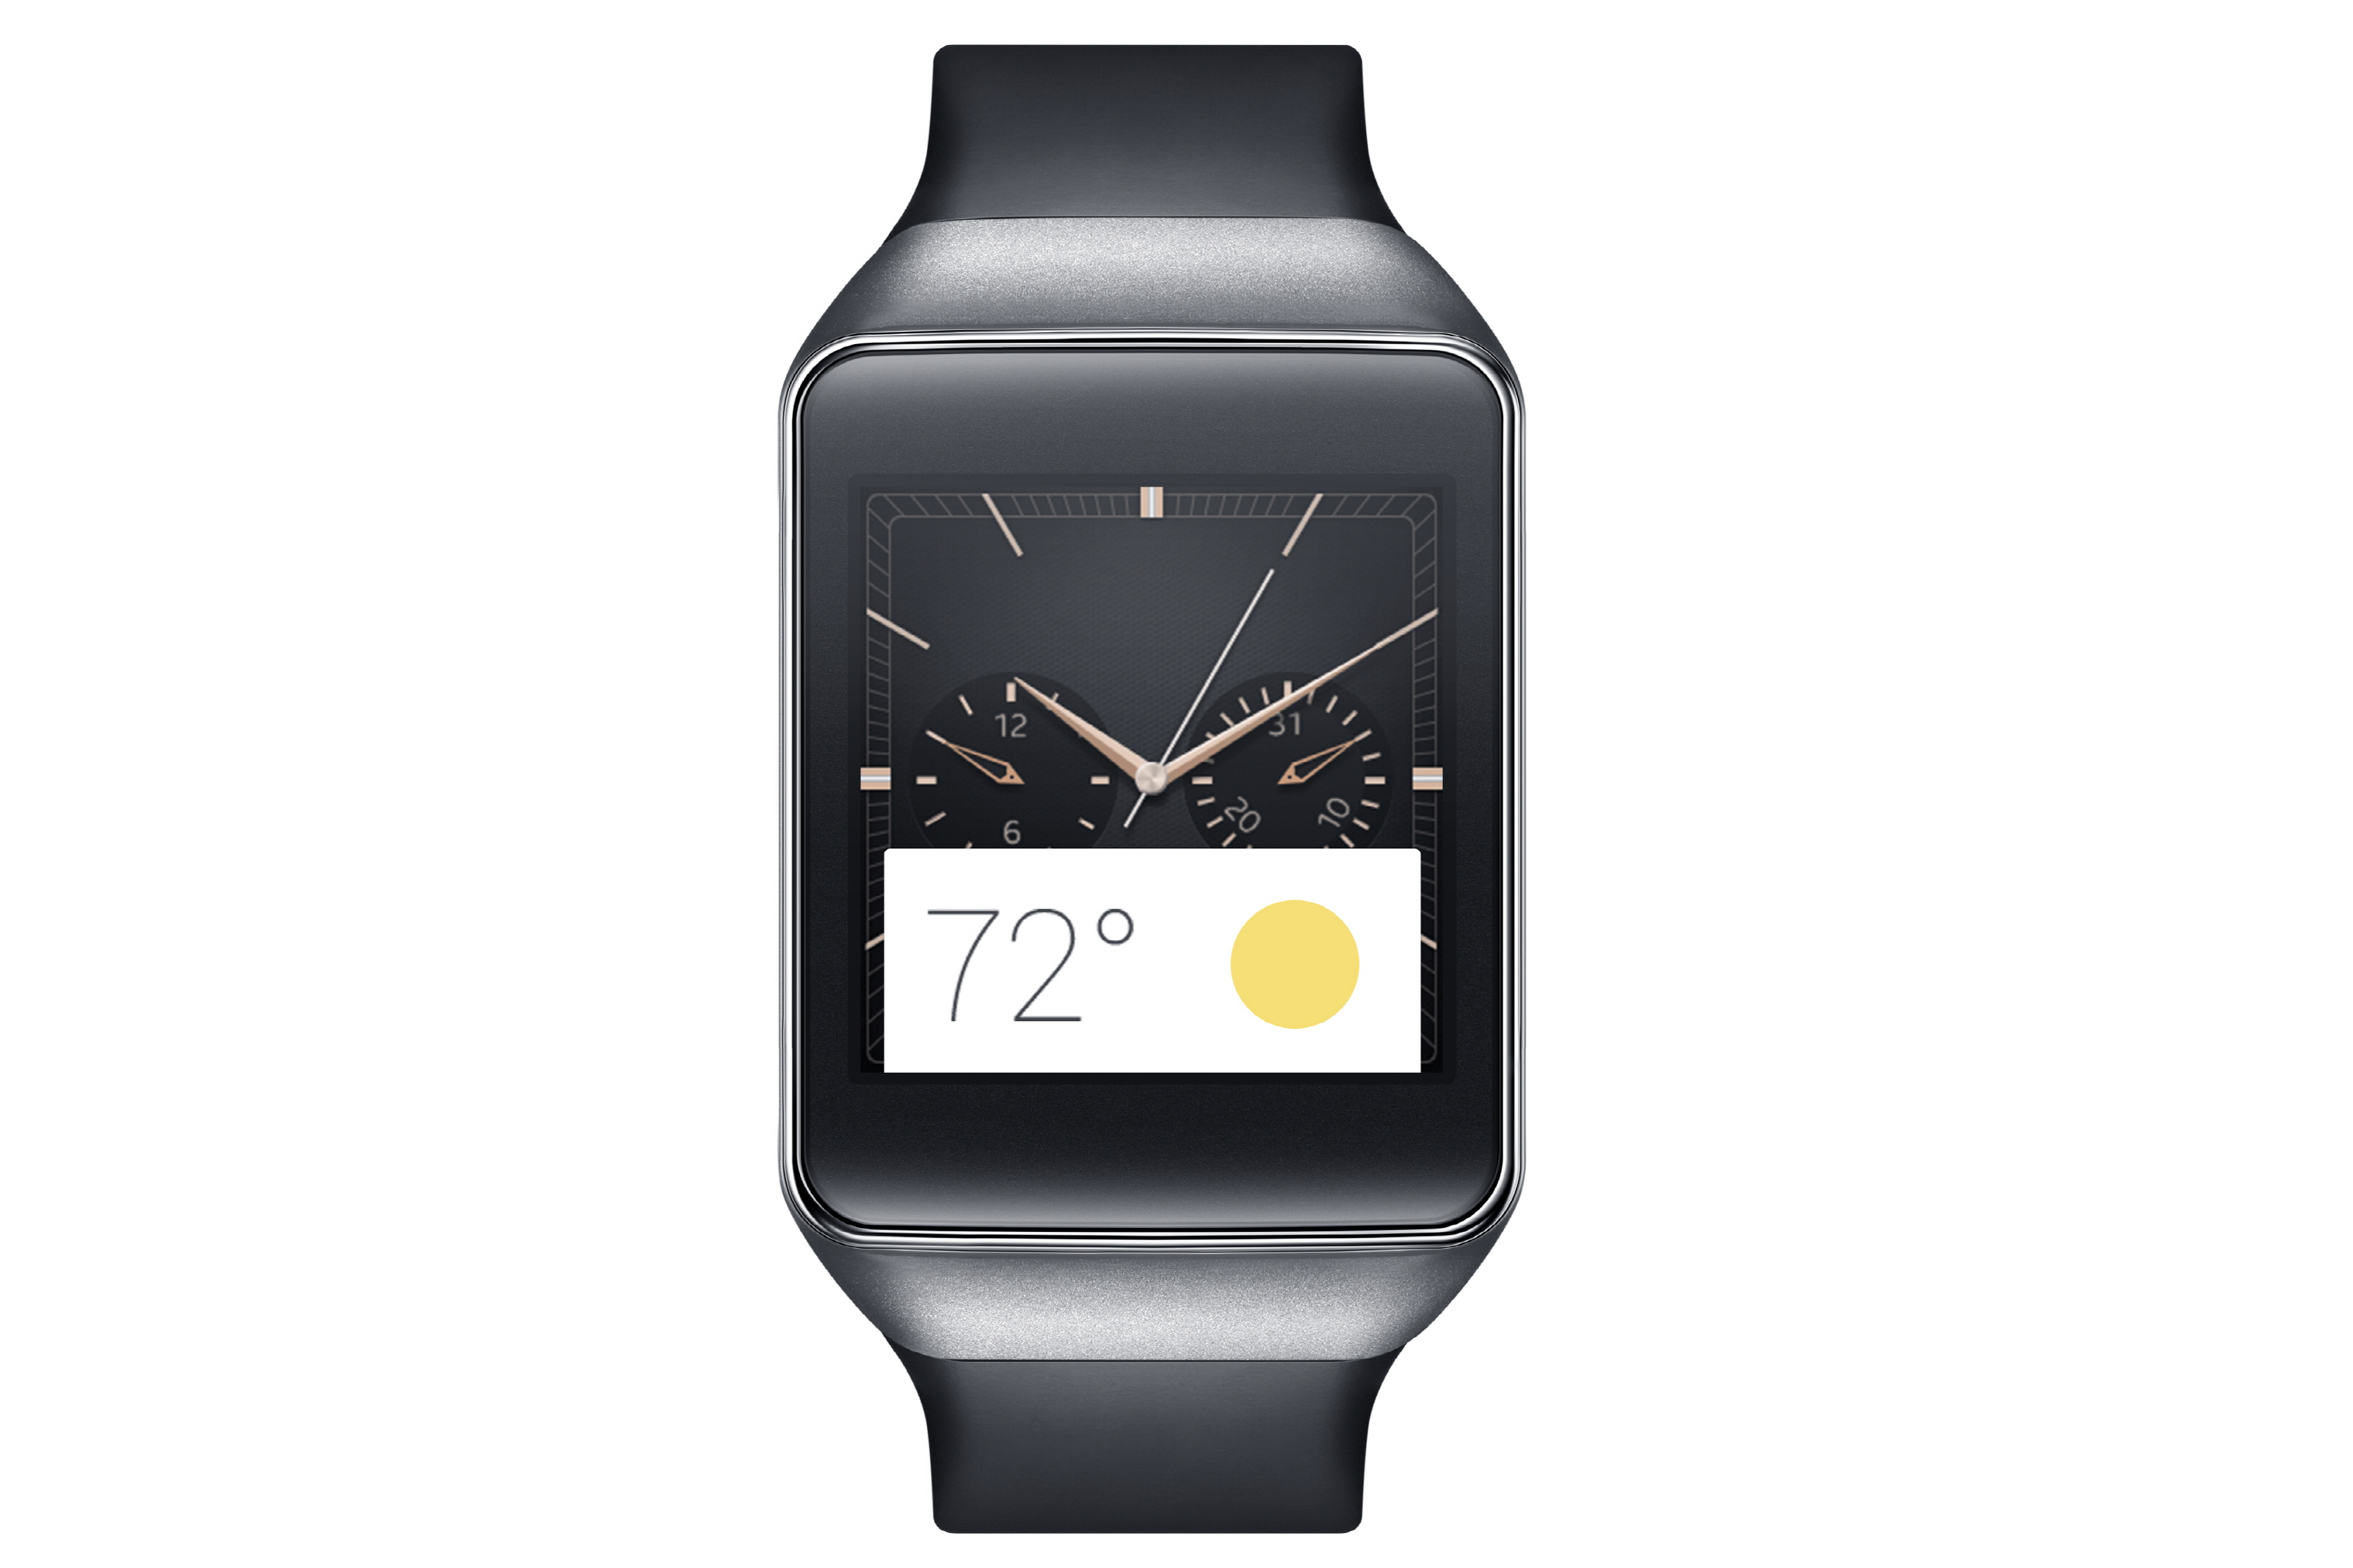 Samsung Launched its Smartwatch with Android Wear